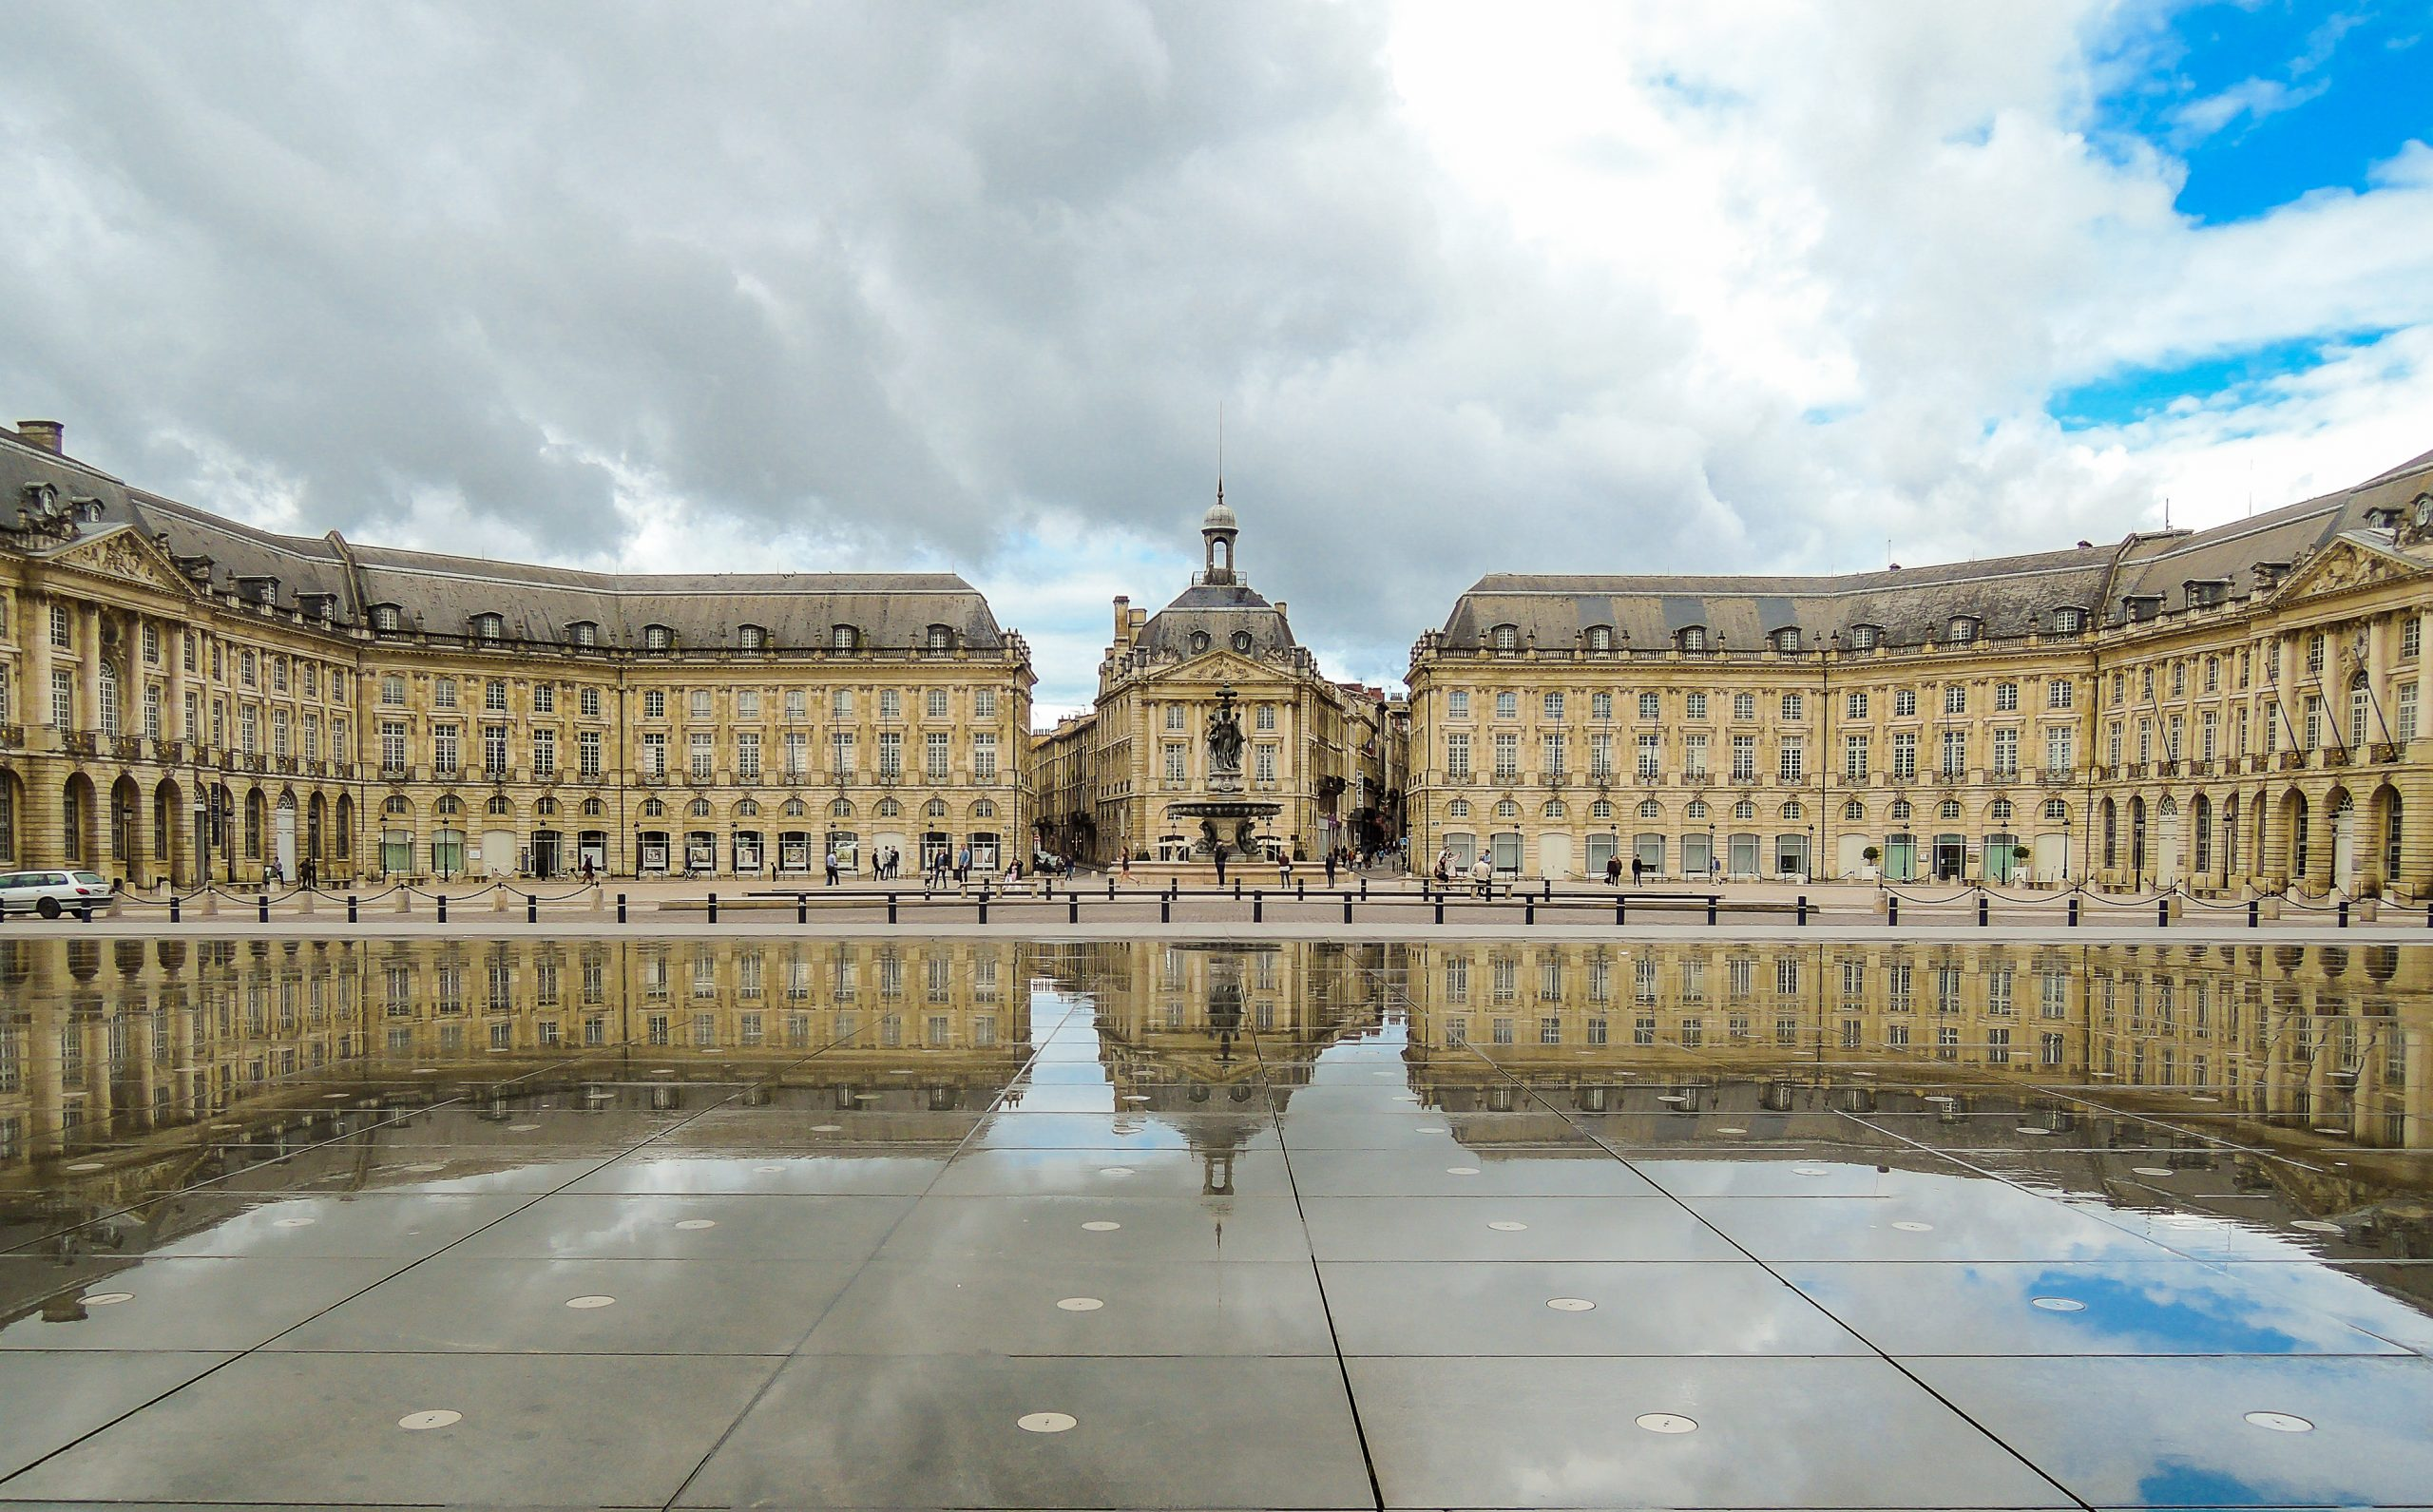 Place_de_la_bourse,_Bordeaux